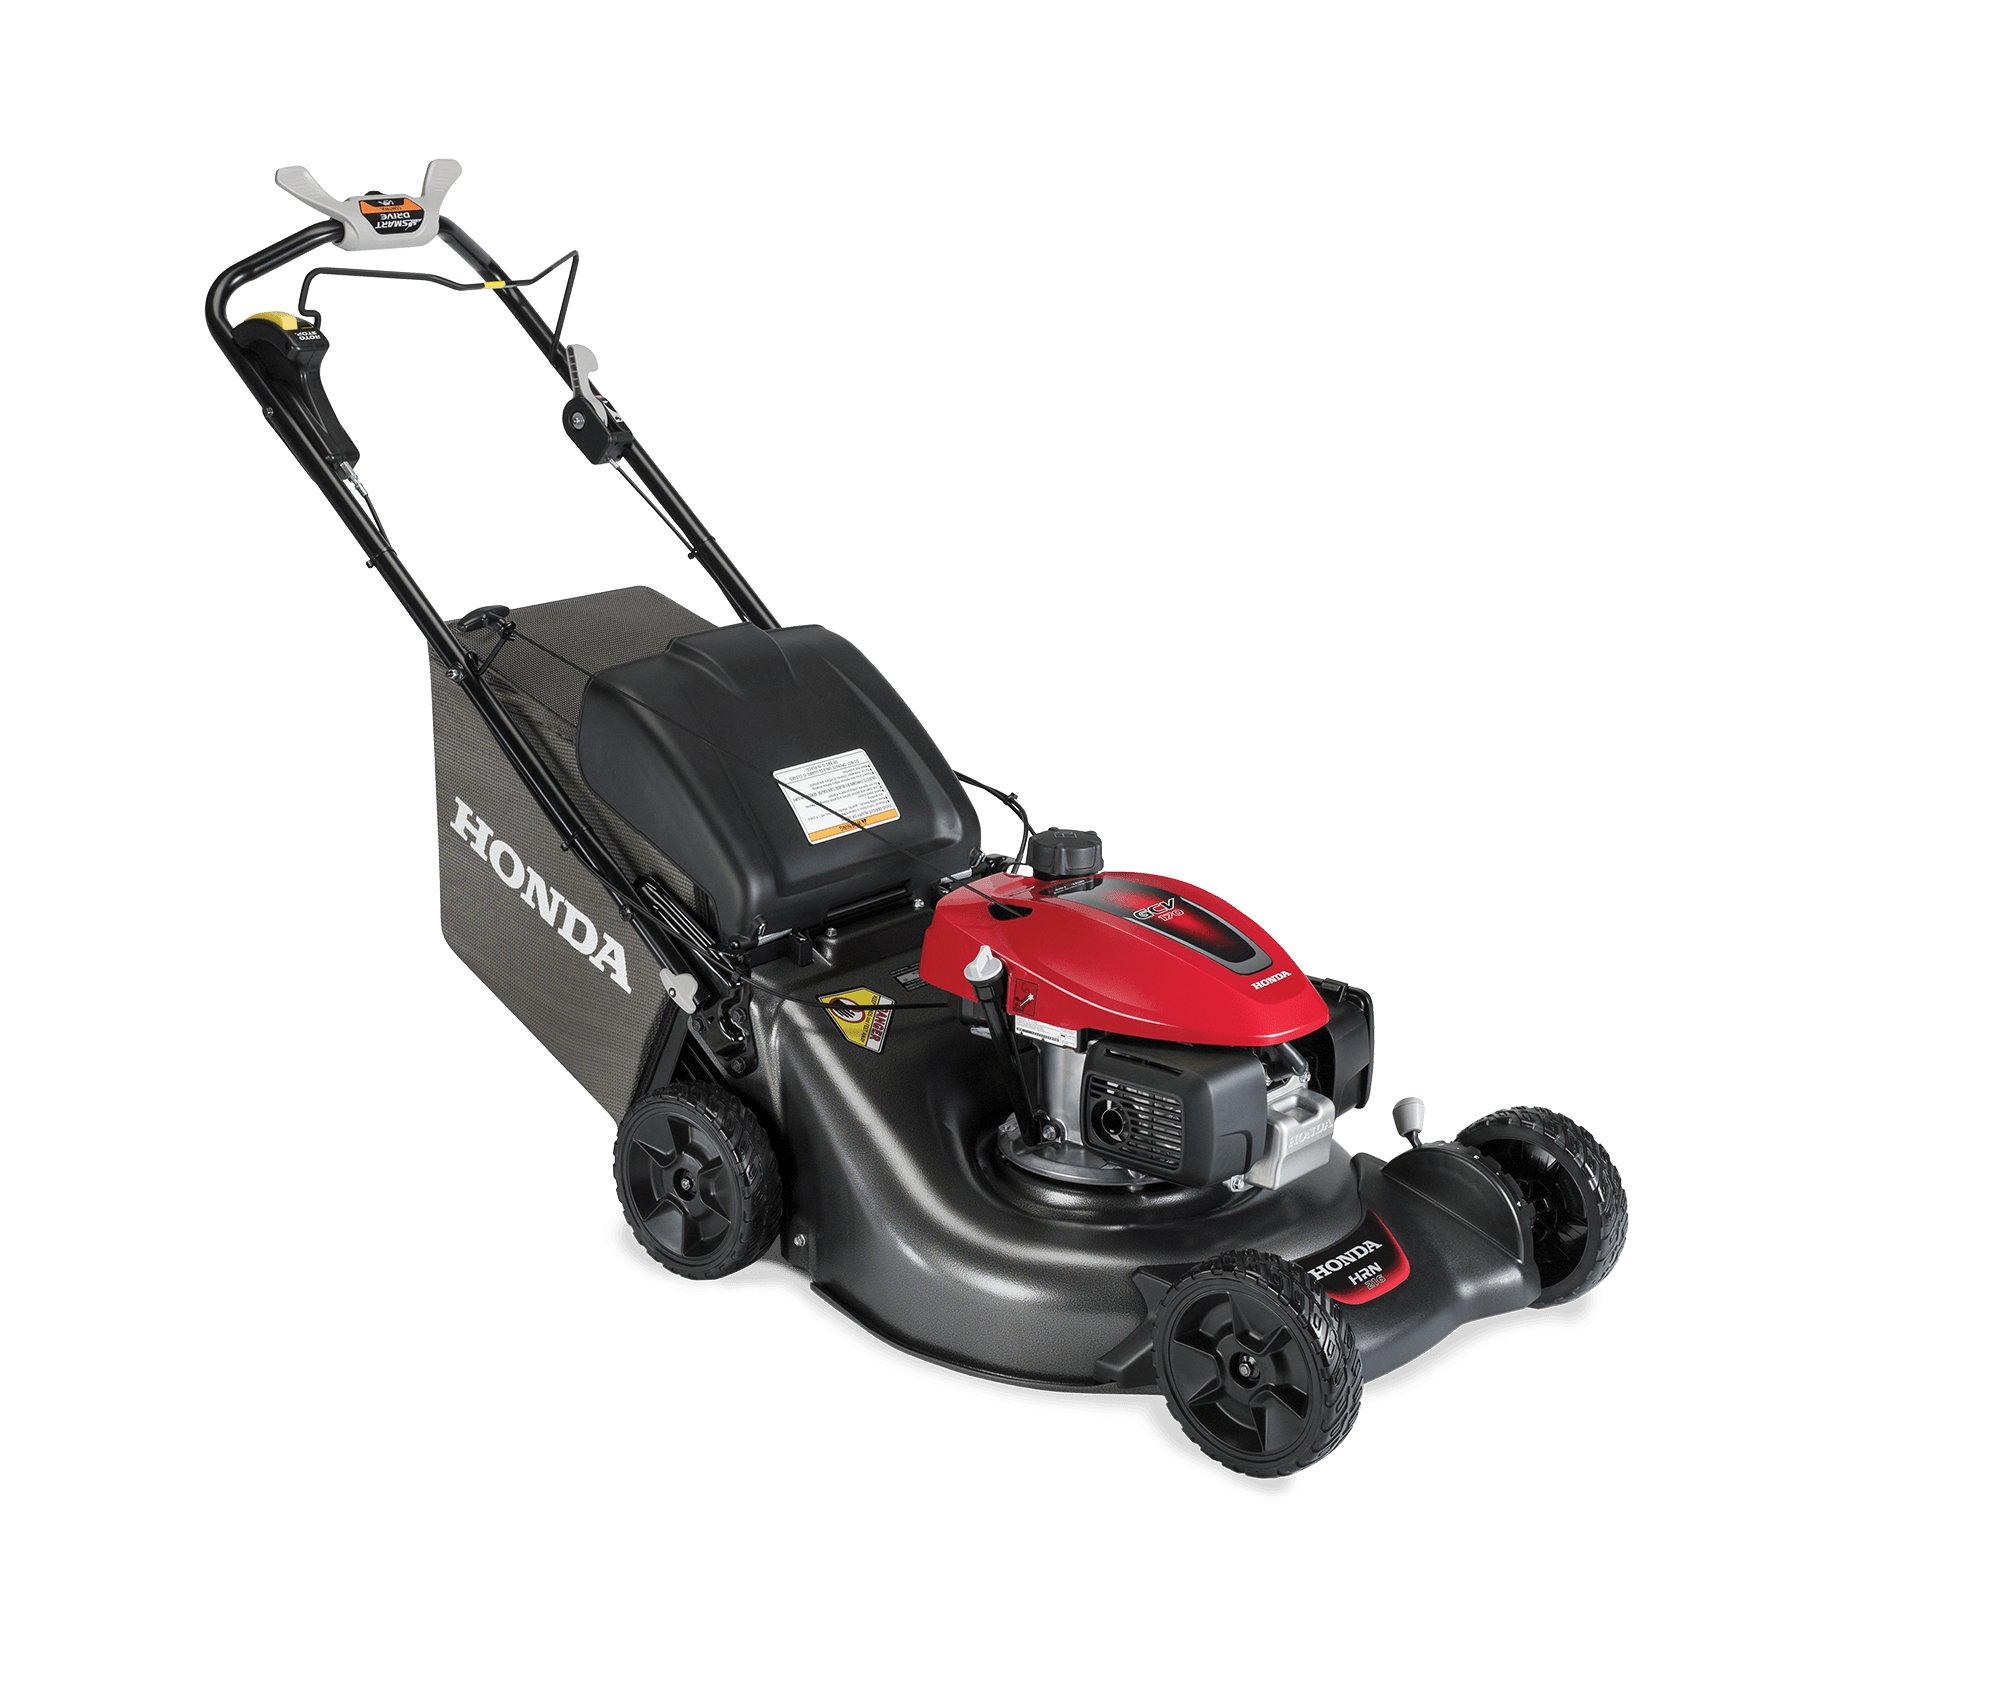 Image of the HRN Smart Drive<sup>TM</sup> Blade-Stop System Lawn Mower